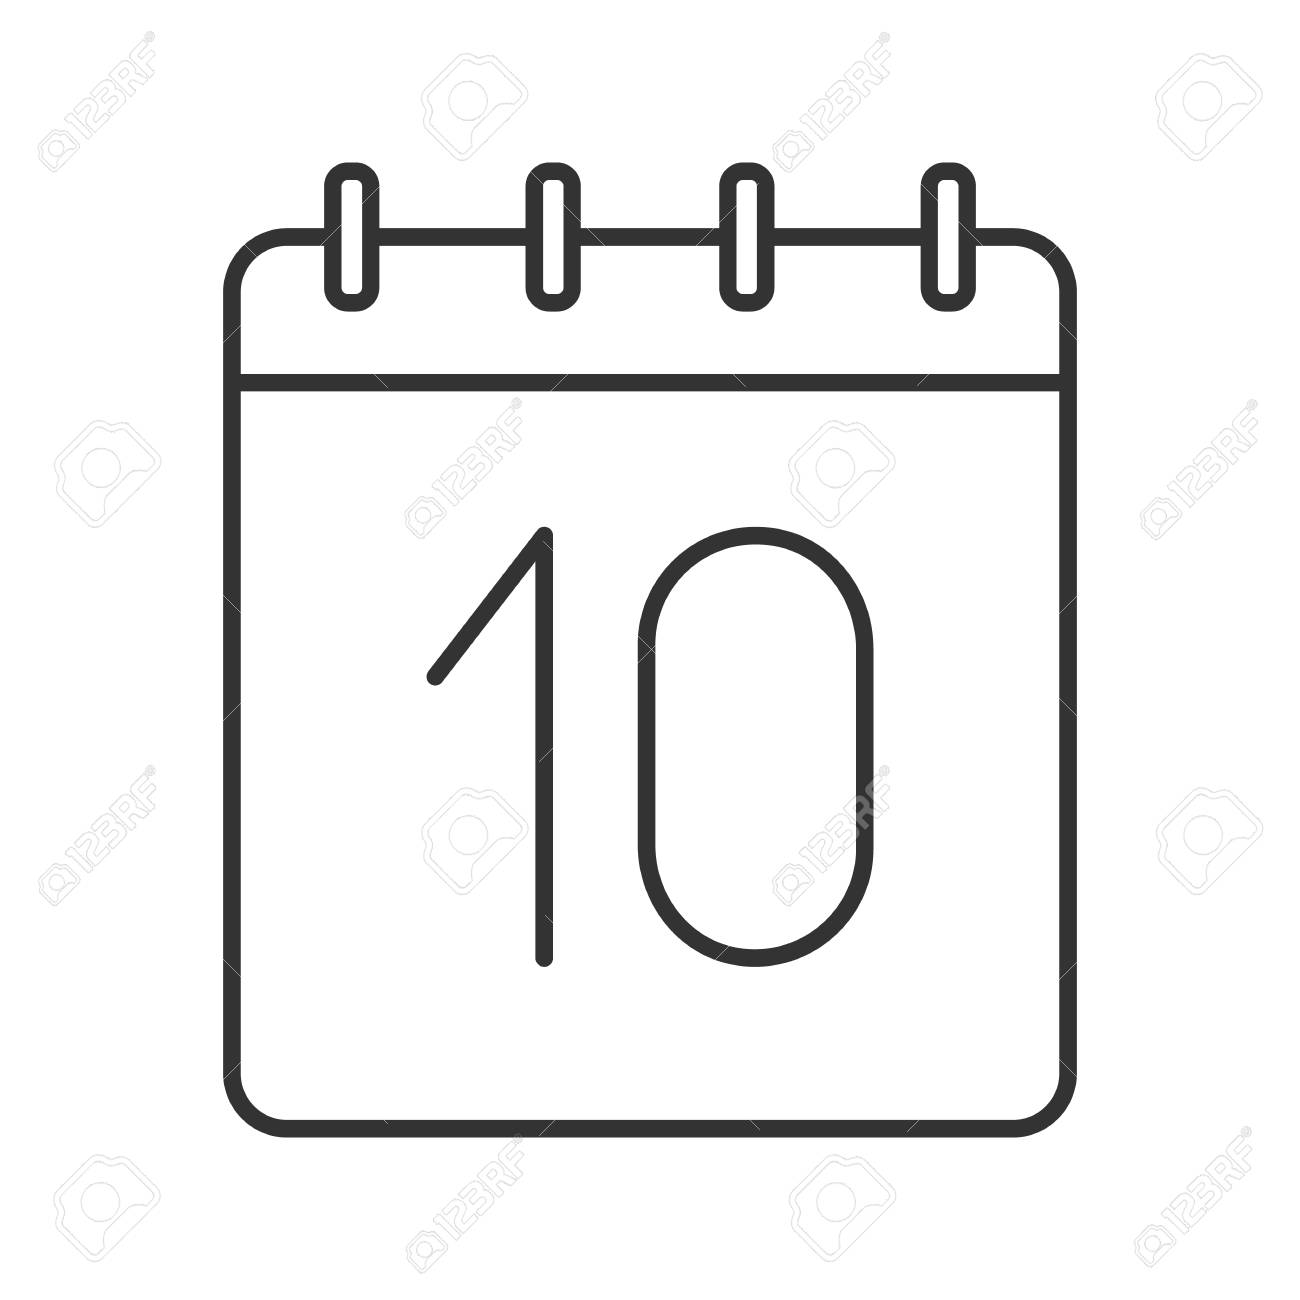 hight resolution of tenth day of month linear icon wall calendar with 10 sign thin line illustration